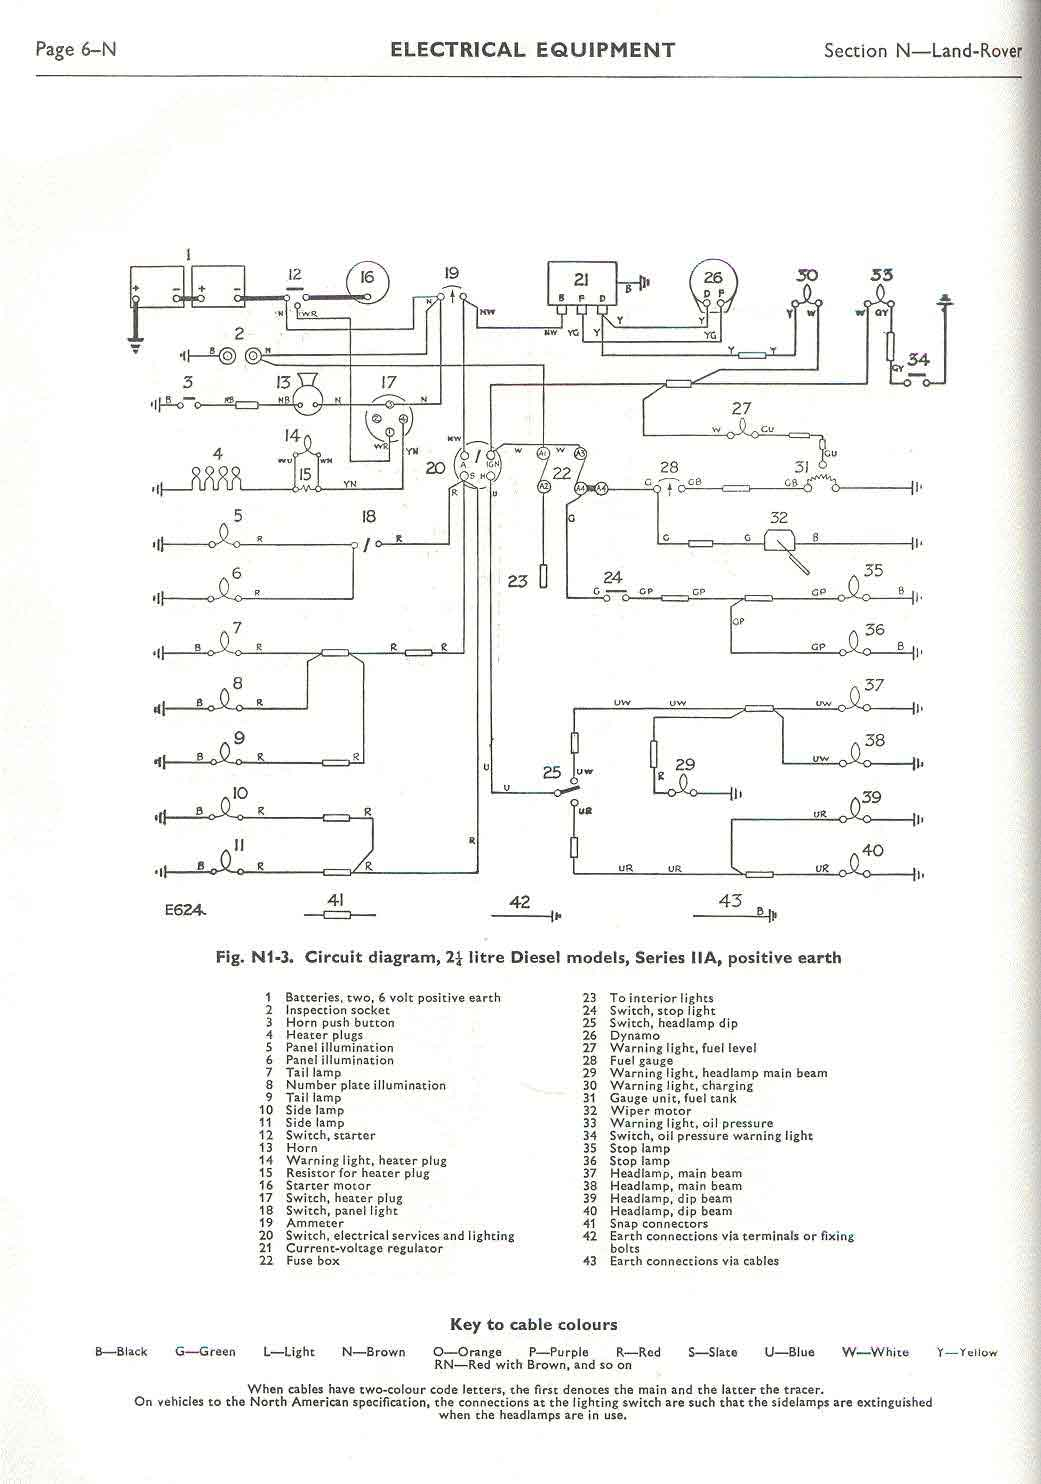 SIIA+VED land rover faq repair & maintenance series electrical land rover series 3 wiring diagram at reclaimingppi.co